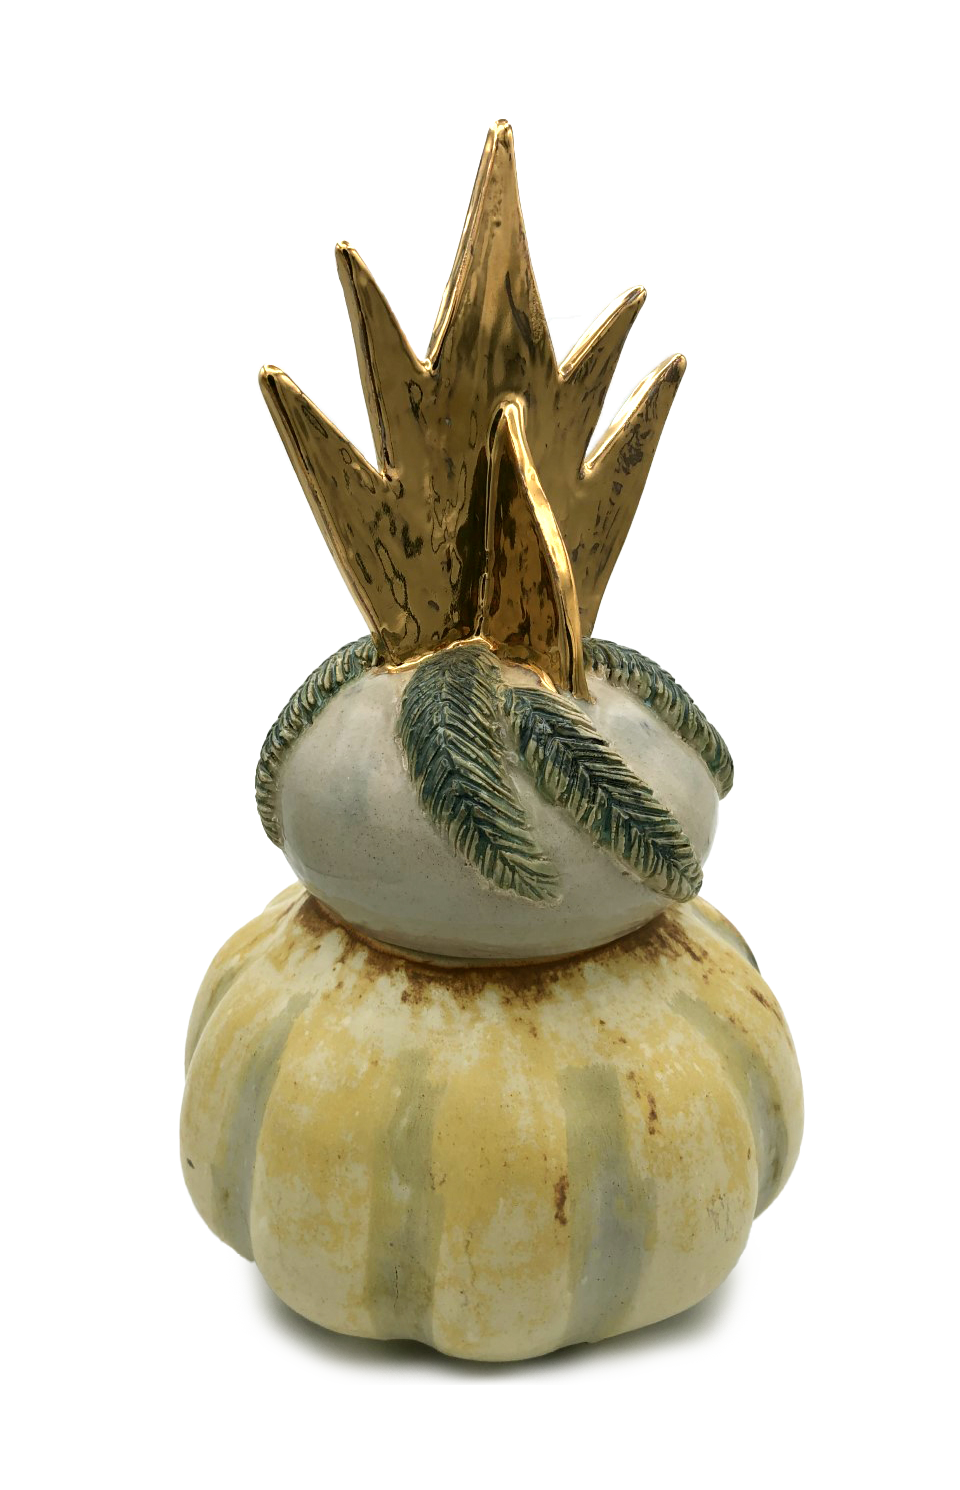 two pumpkin shapes on top of each other with a golden crown, abstract shape on top